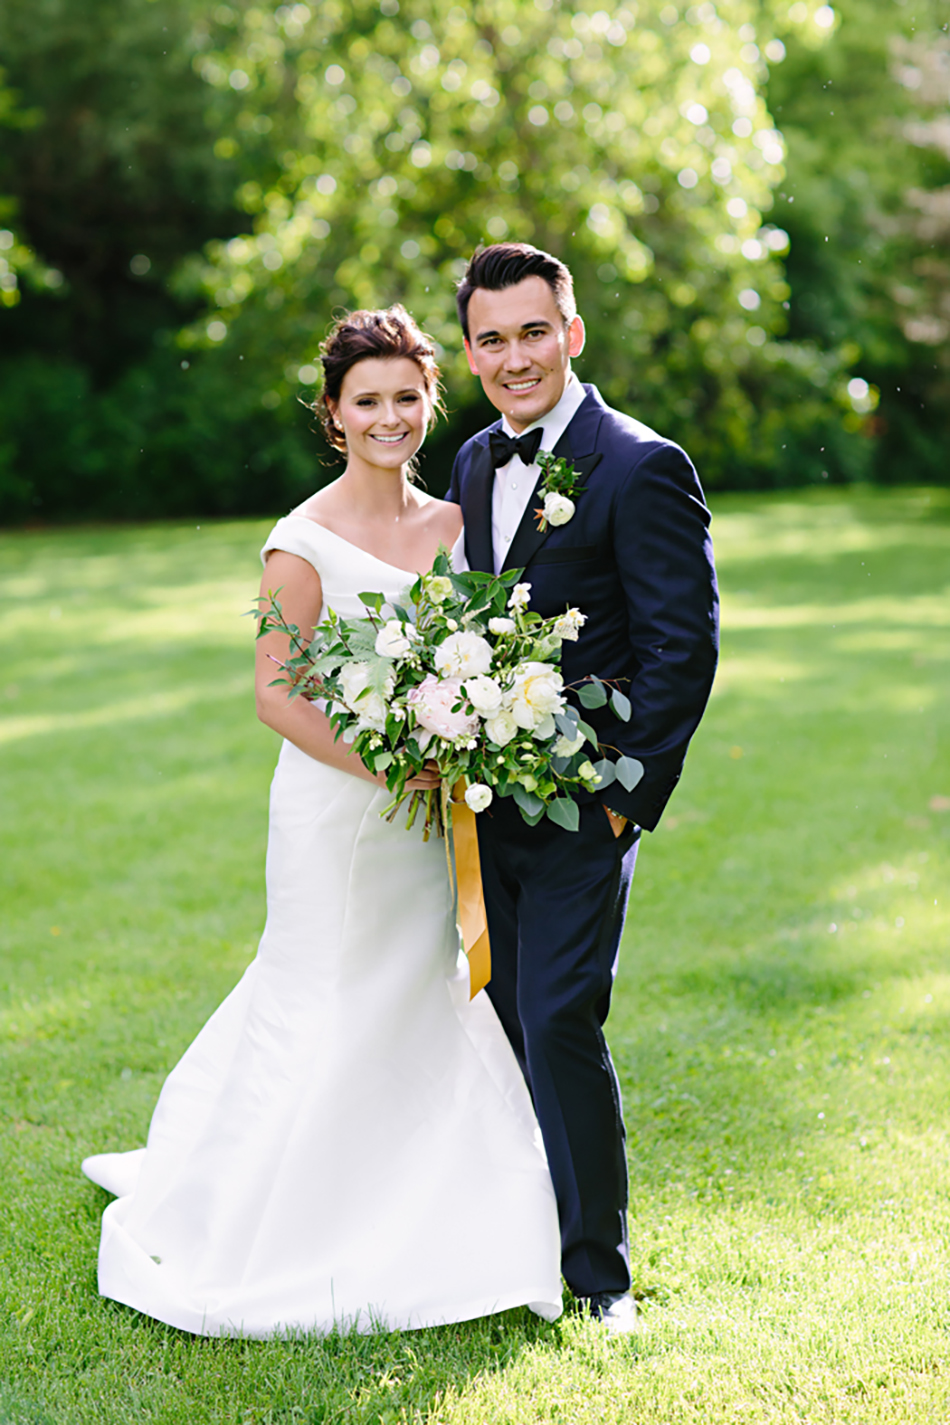 lelarose_colorado_realwedding_08.jpg